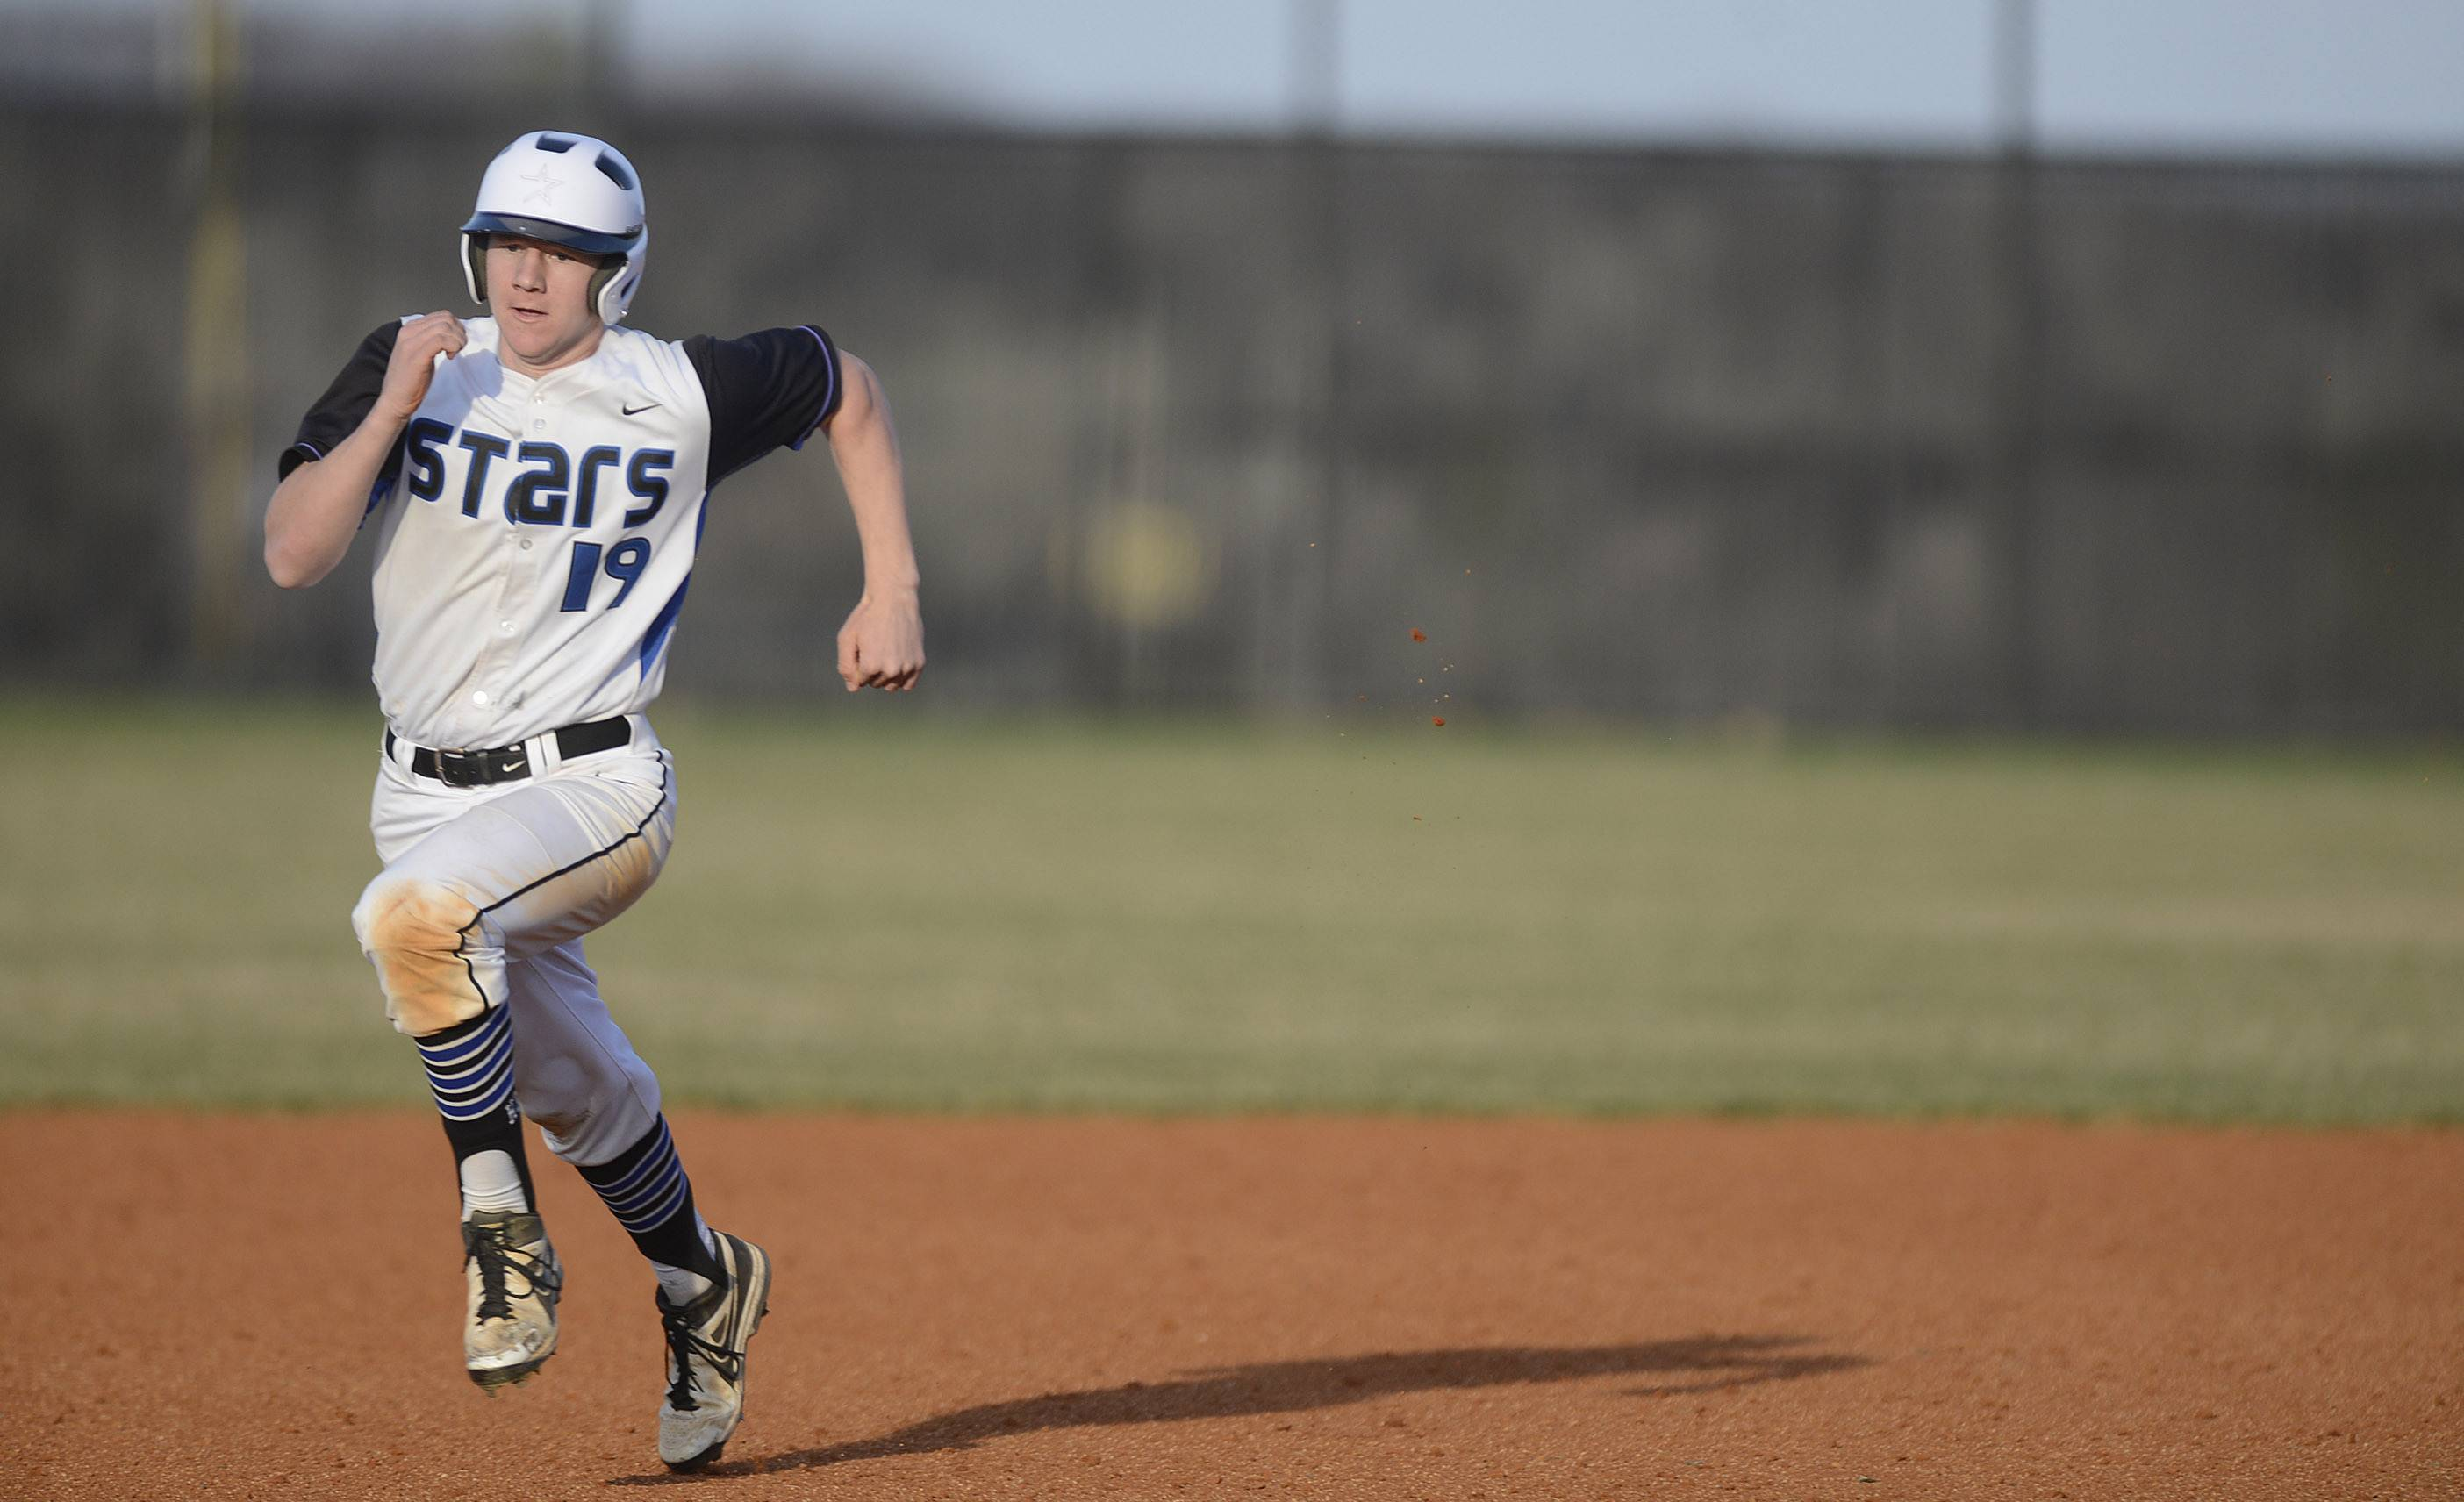 St. Charles North's Tim Hausl sprints from second base to third base in the fifth inning on Friday, April 11.